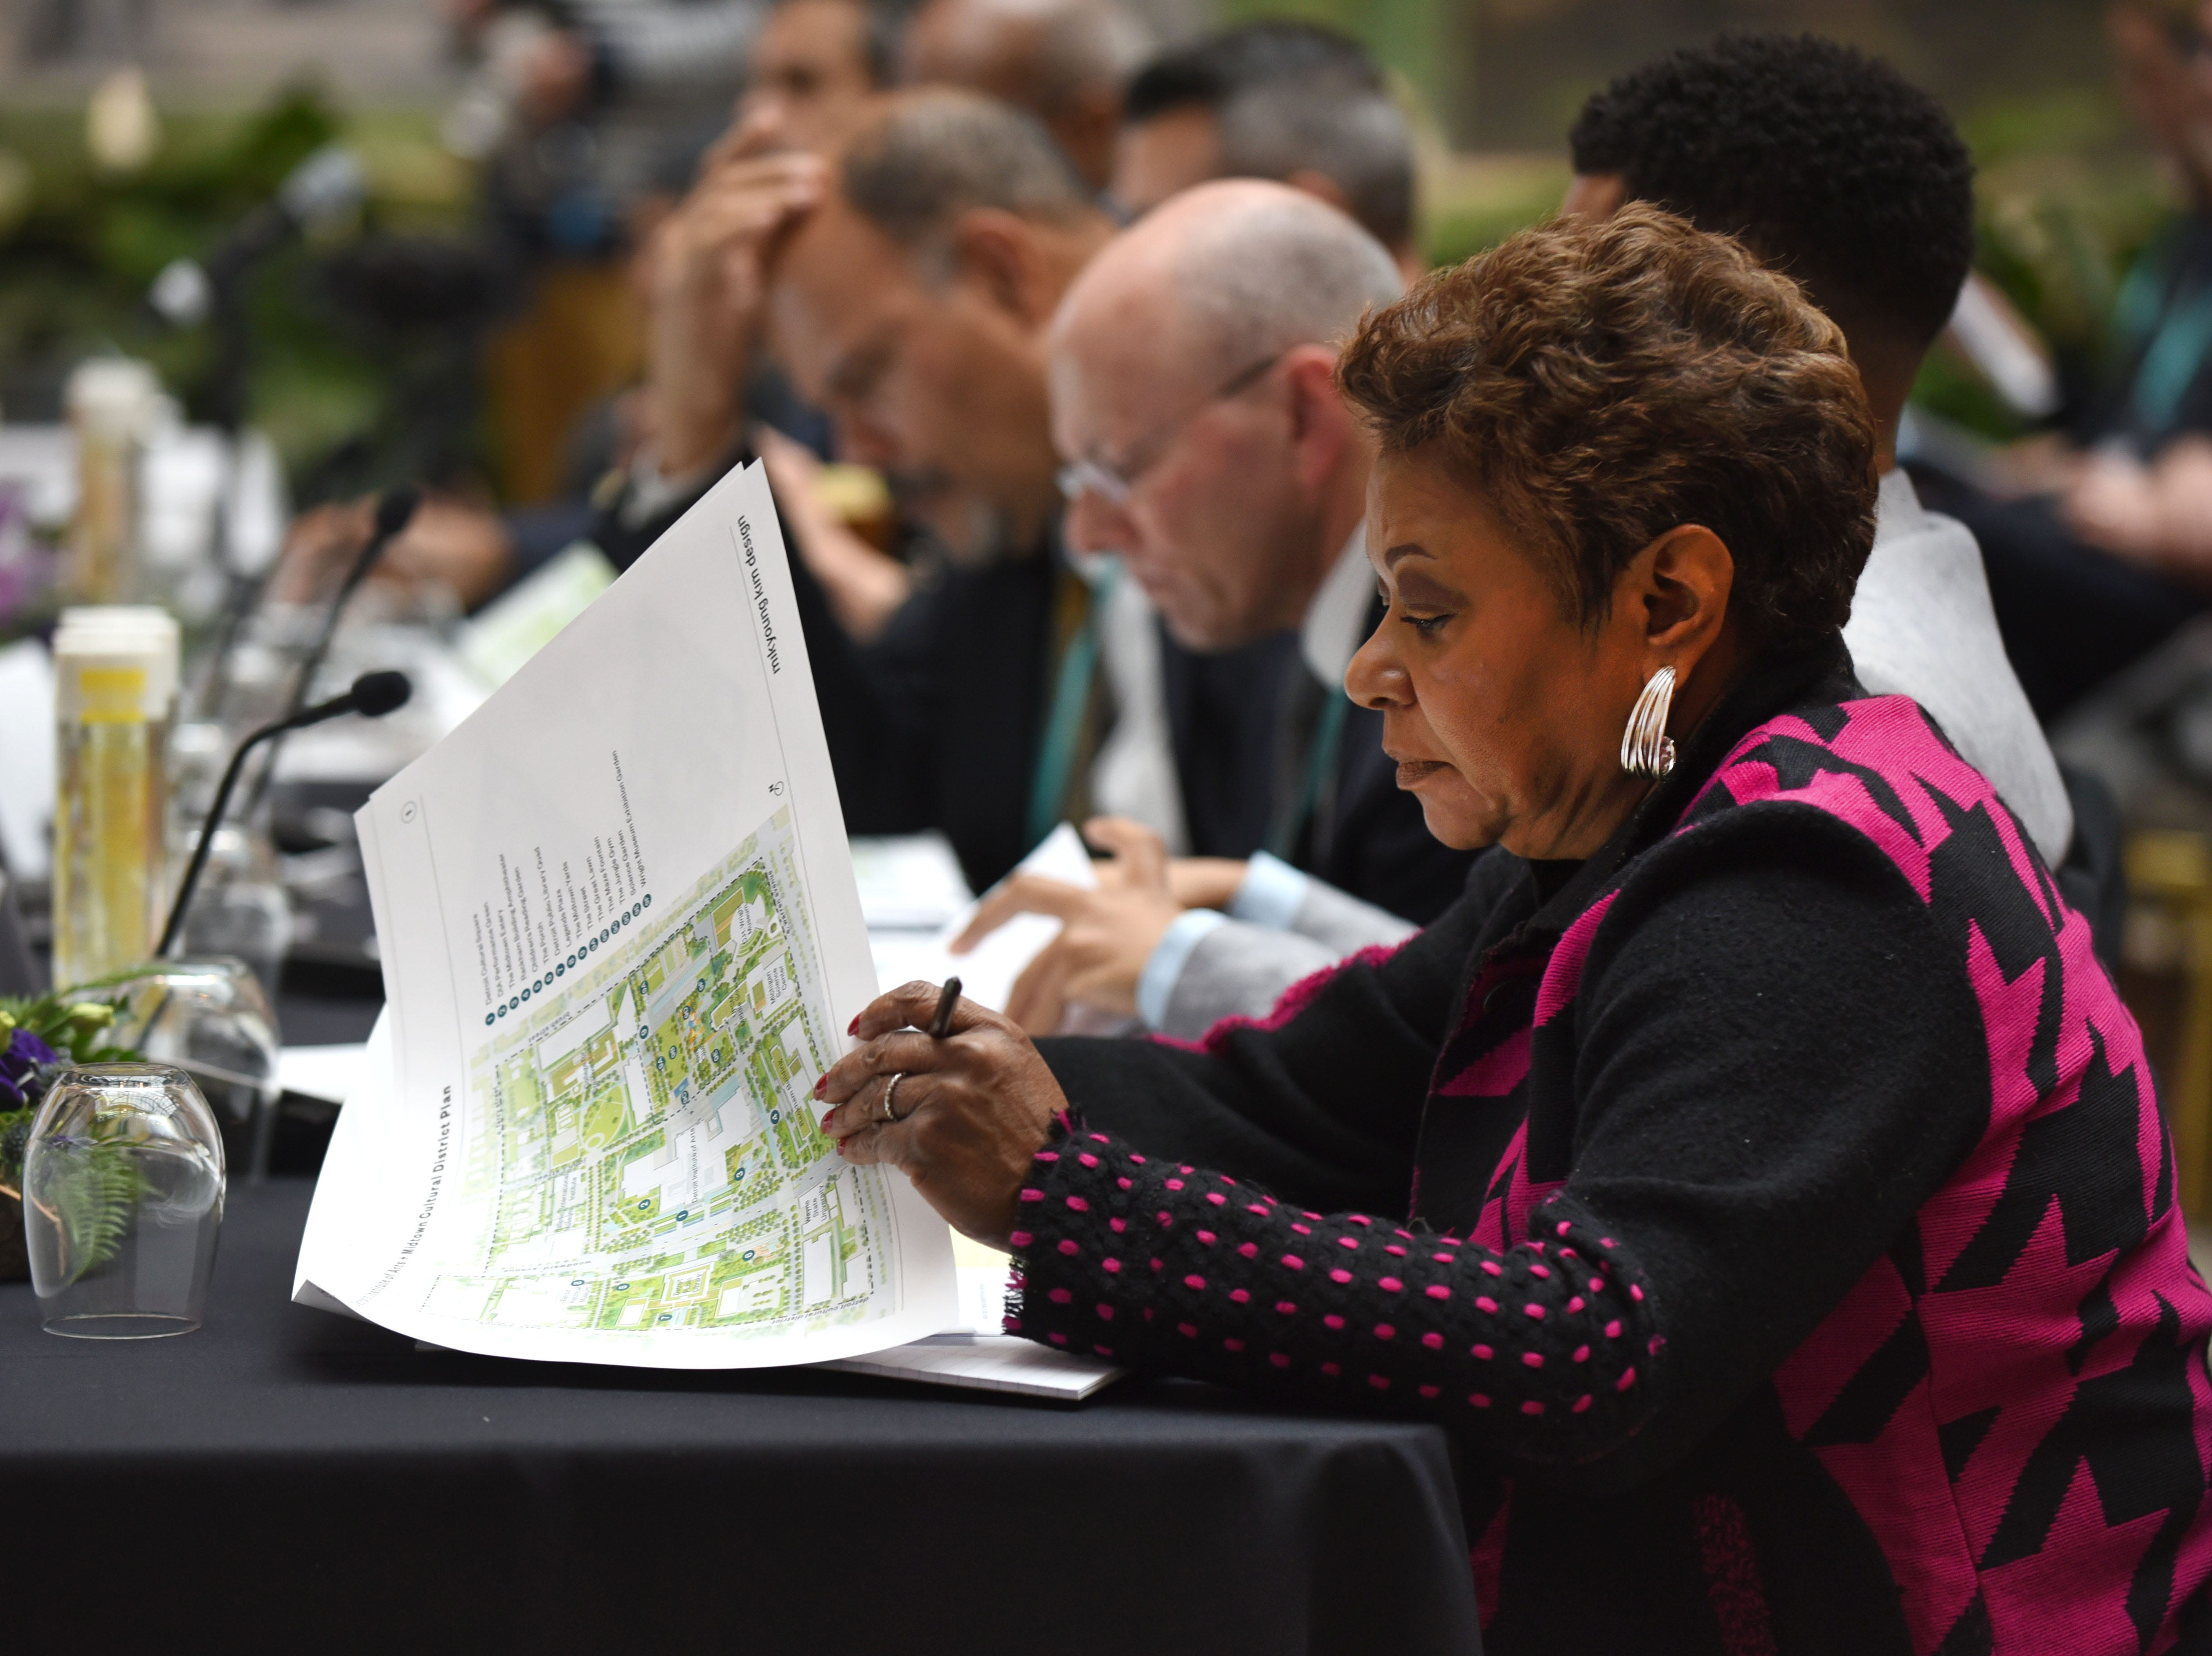 Jo Anne Mondowey, executive director, Detroit Public Library, looks at renderings as part of a master design plan presented by Mikyoung Kim Design for the DIA Plaza which is part of the Midtown Cultural Campus.